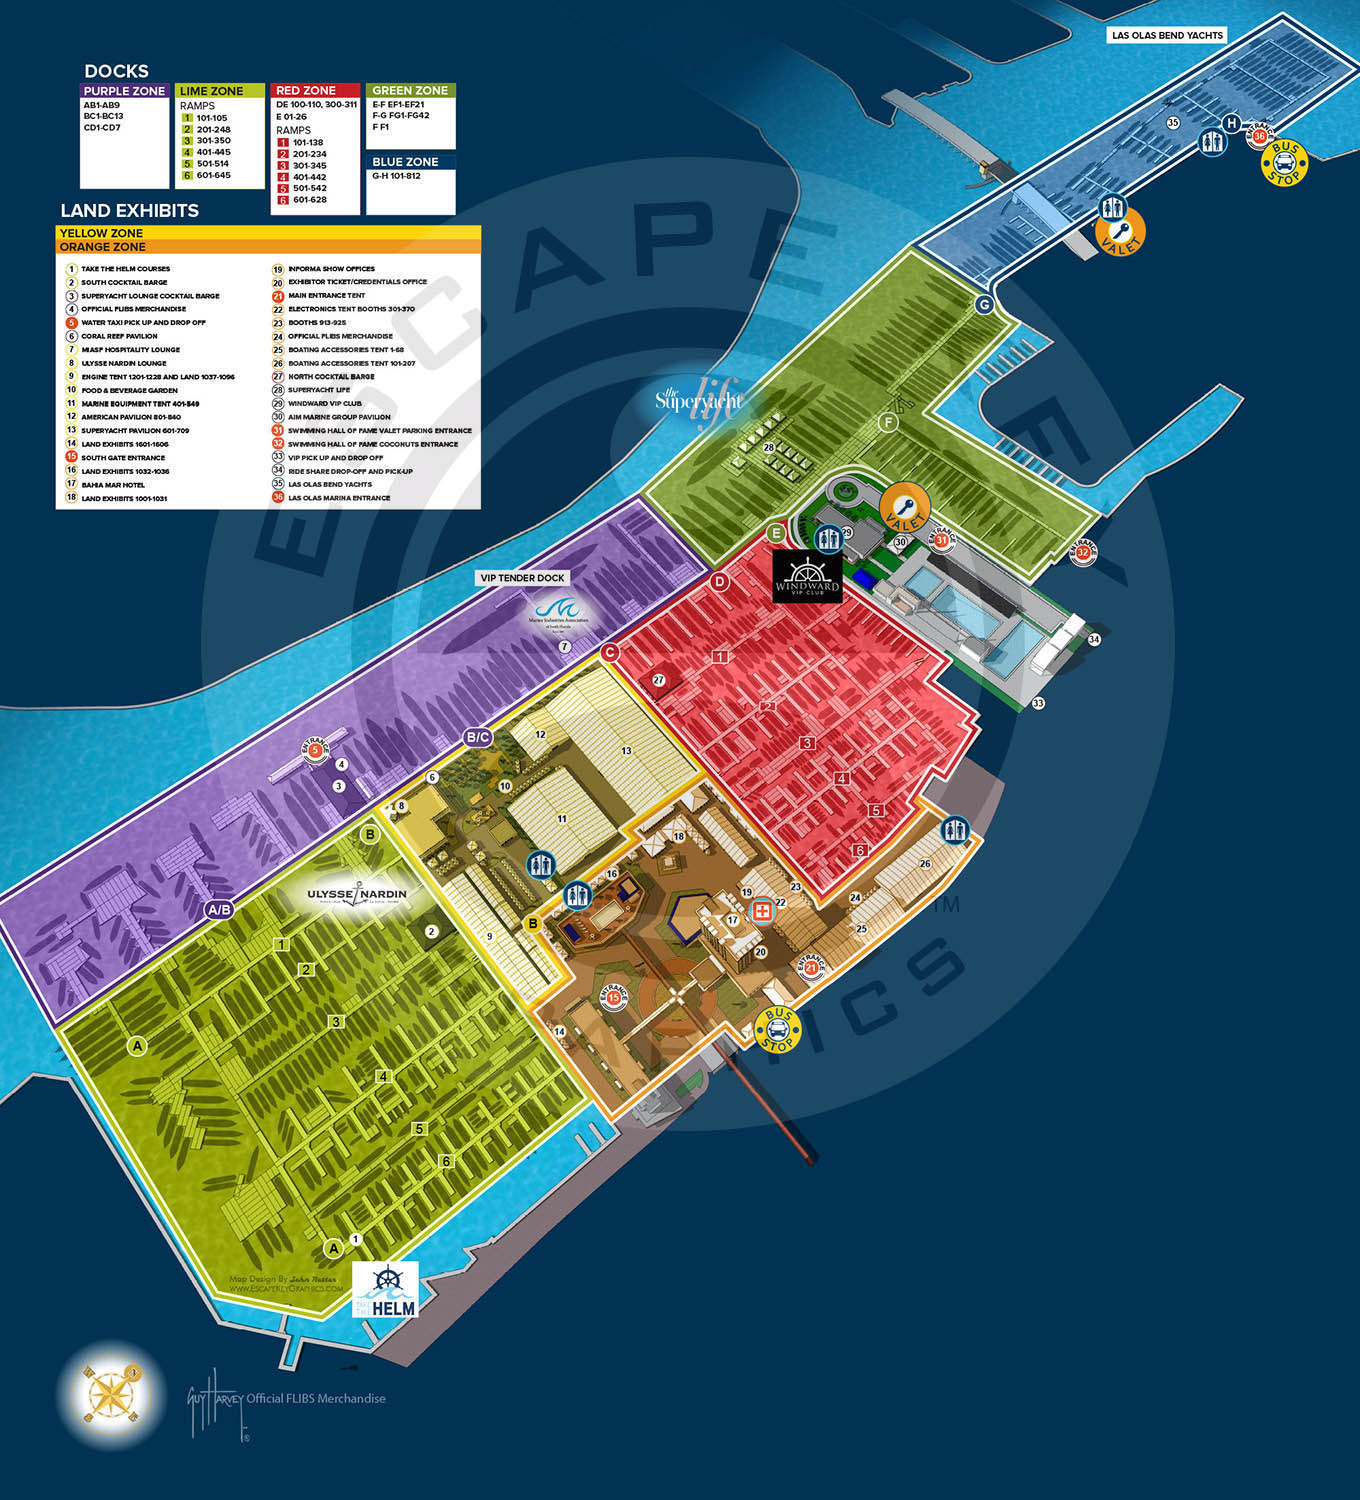 Fort Lauderdale International Boat Show map